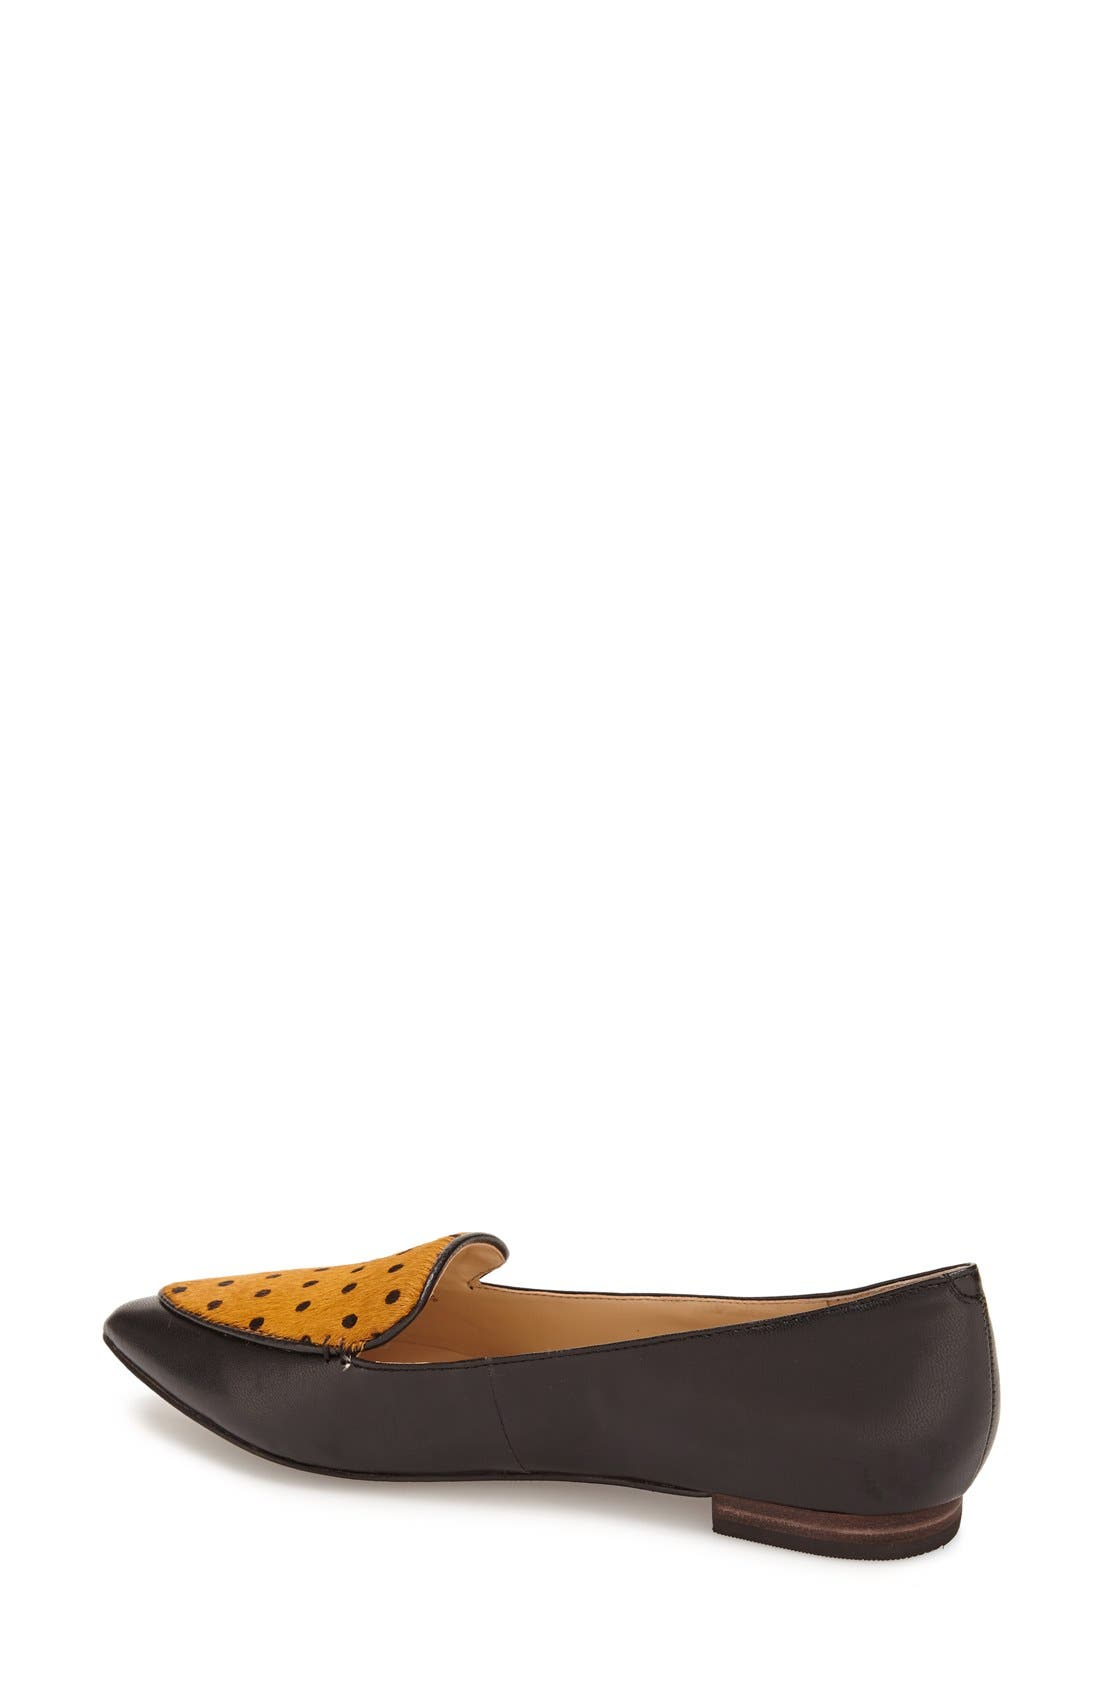 'Cammila' Pointy Toe Loafer,                             Alternate thumbnail 40, color,